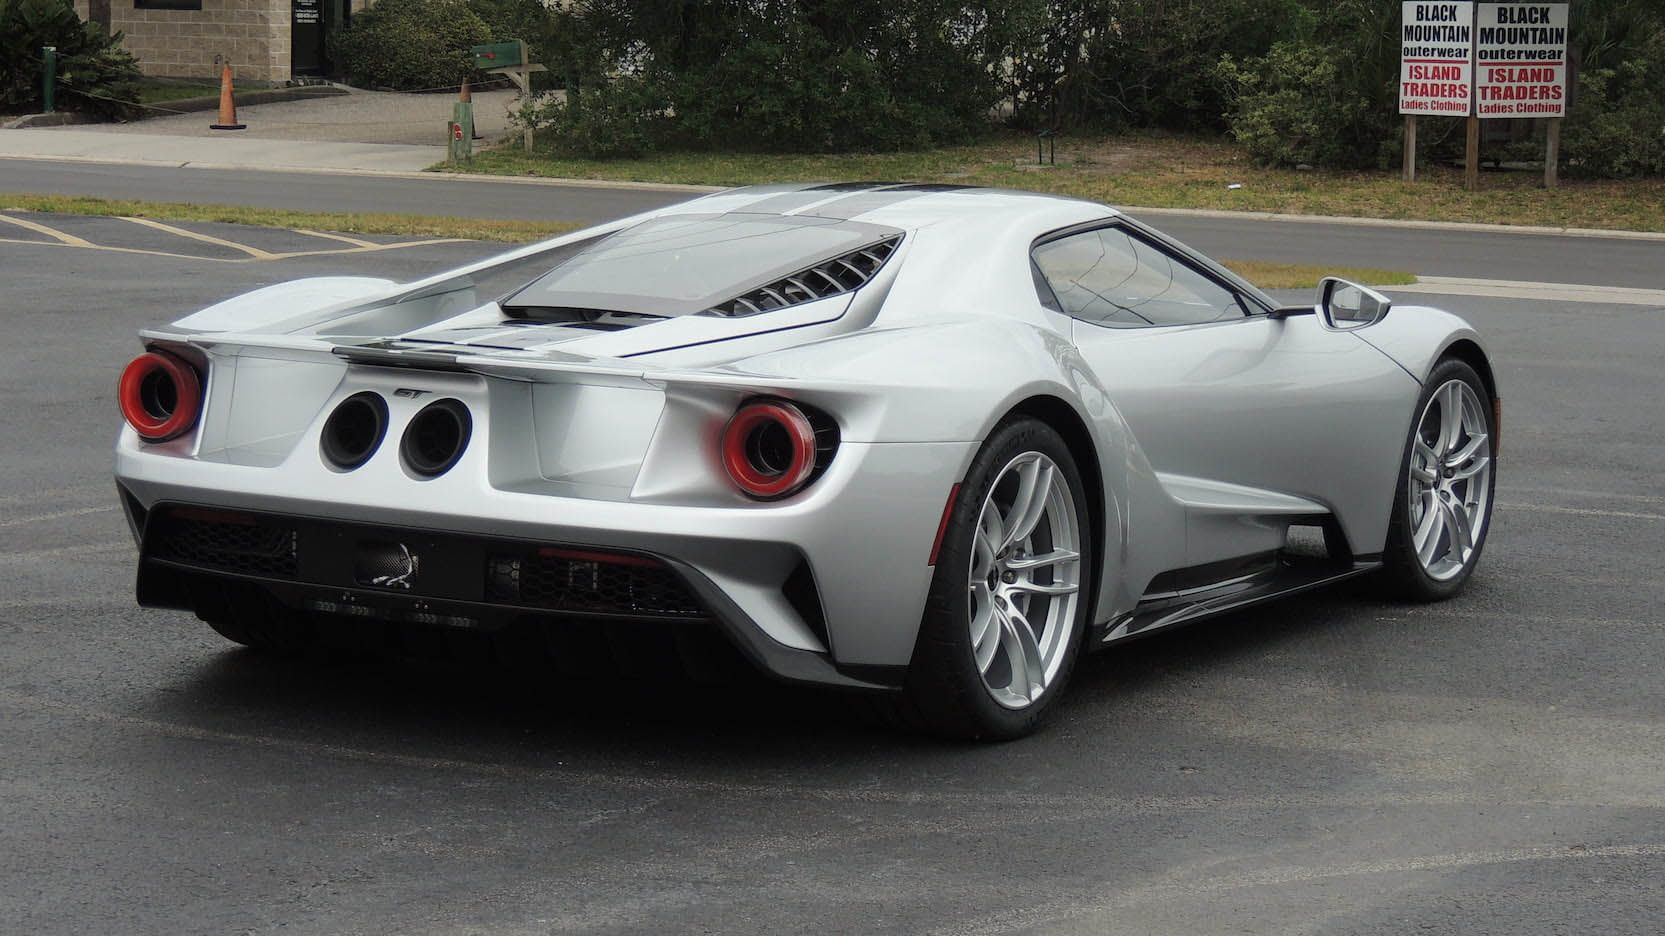 Ford Gt Within Its First Two Years Mecum Will Also Be Barred From Auctioning These Models Even Though Theyre Not Owned By Someone Who Is Subject To